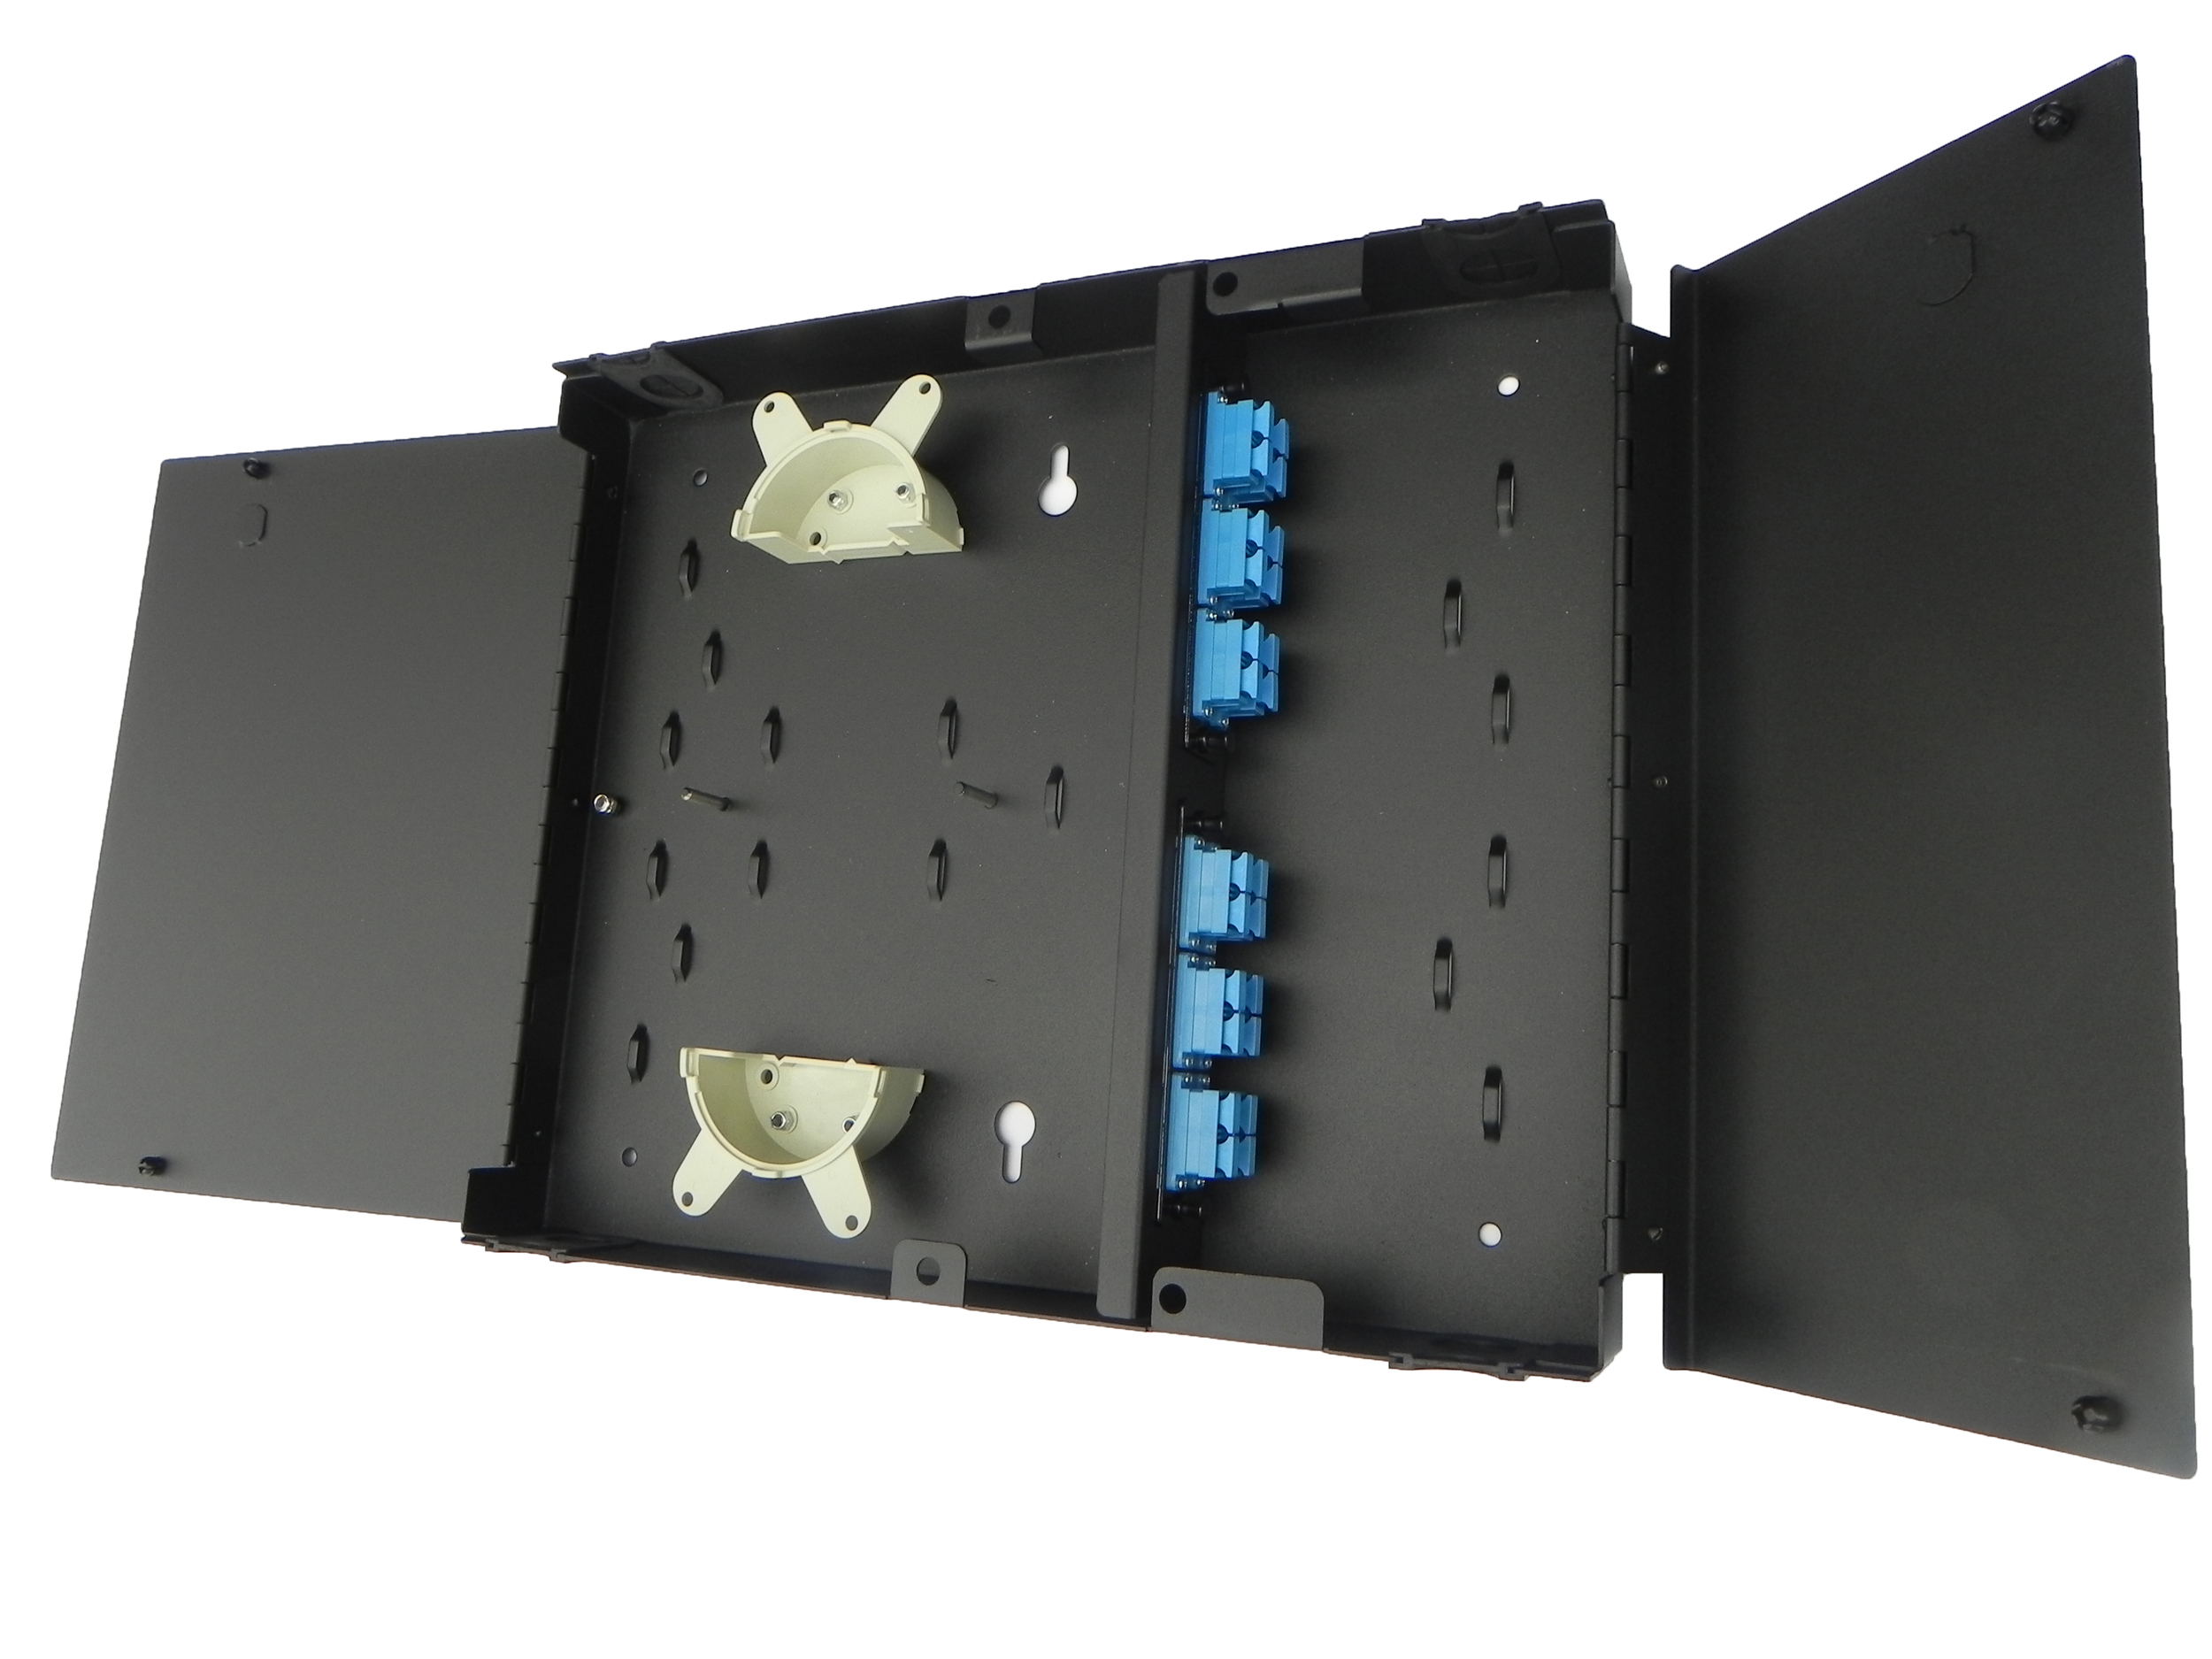 Inside view of panel with adapter plates